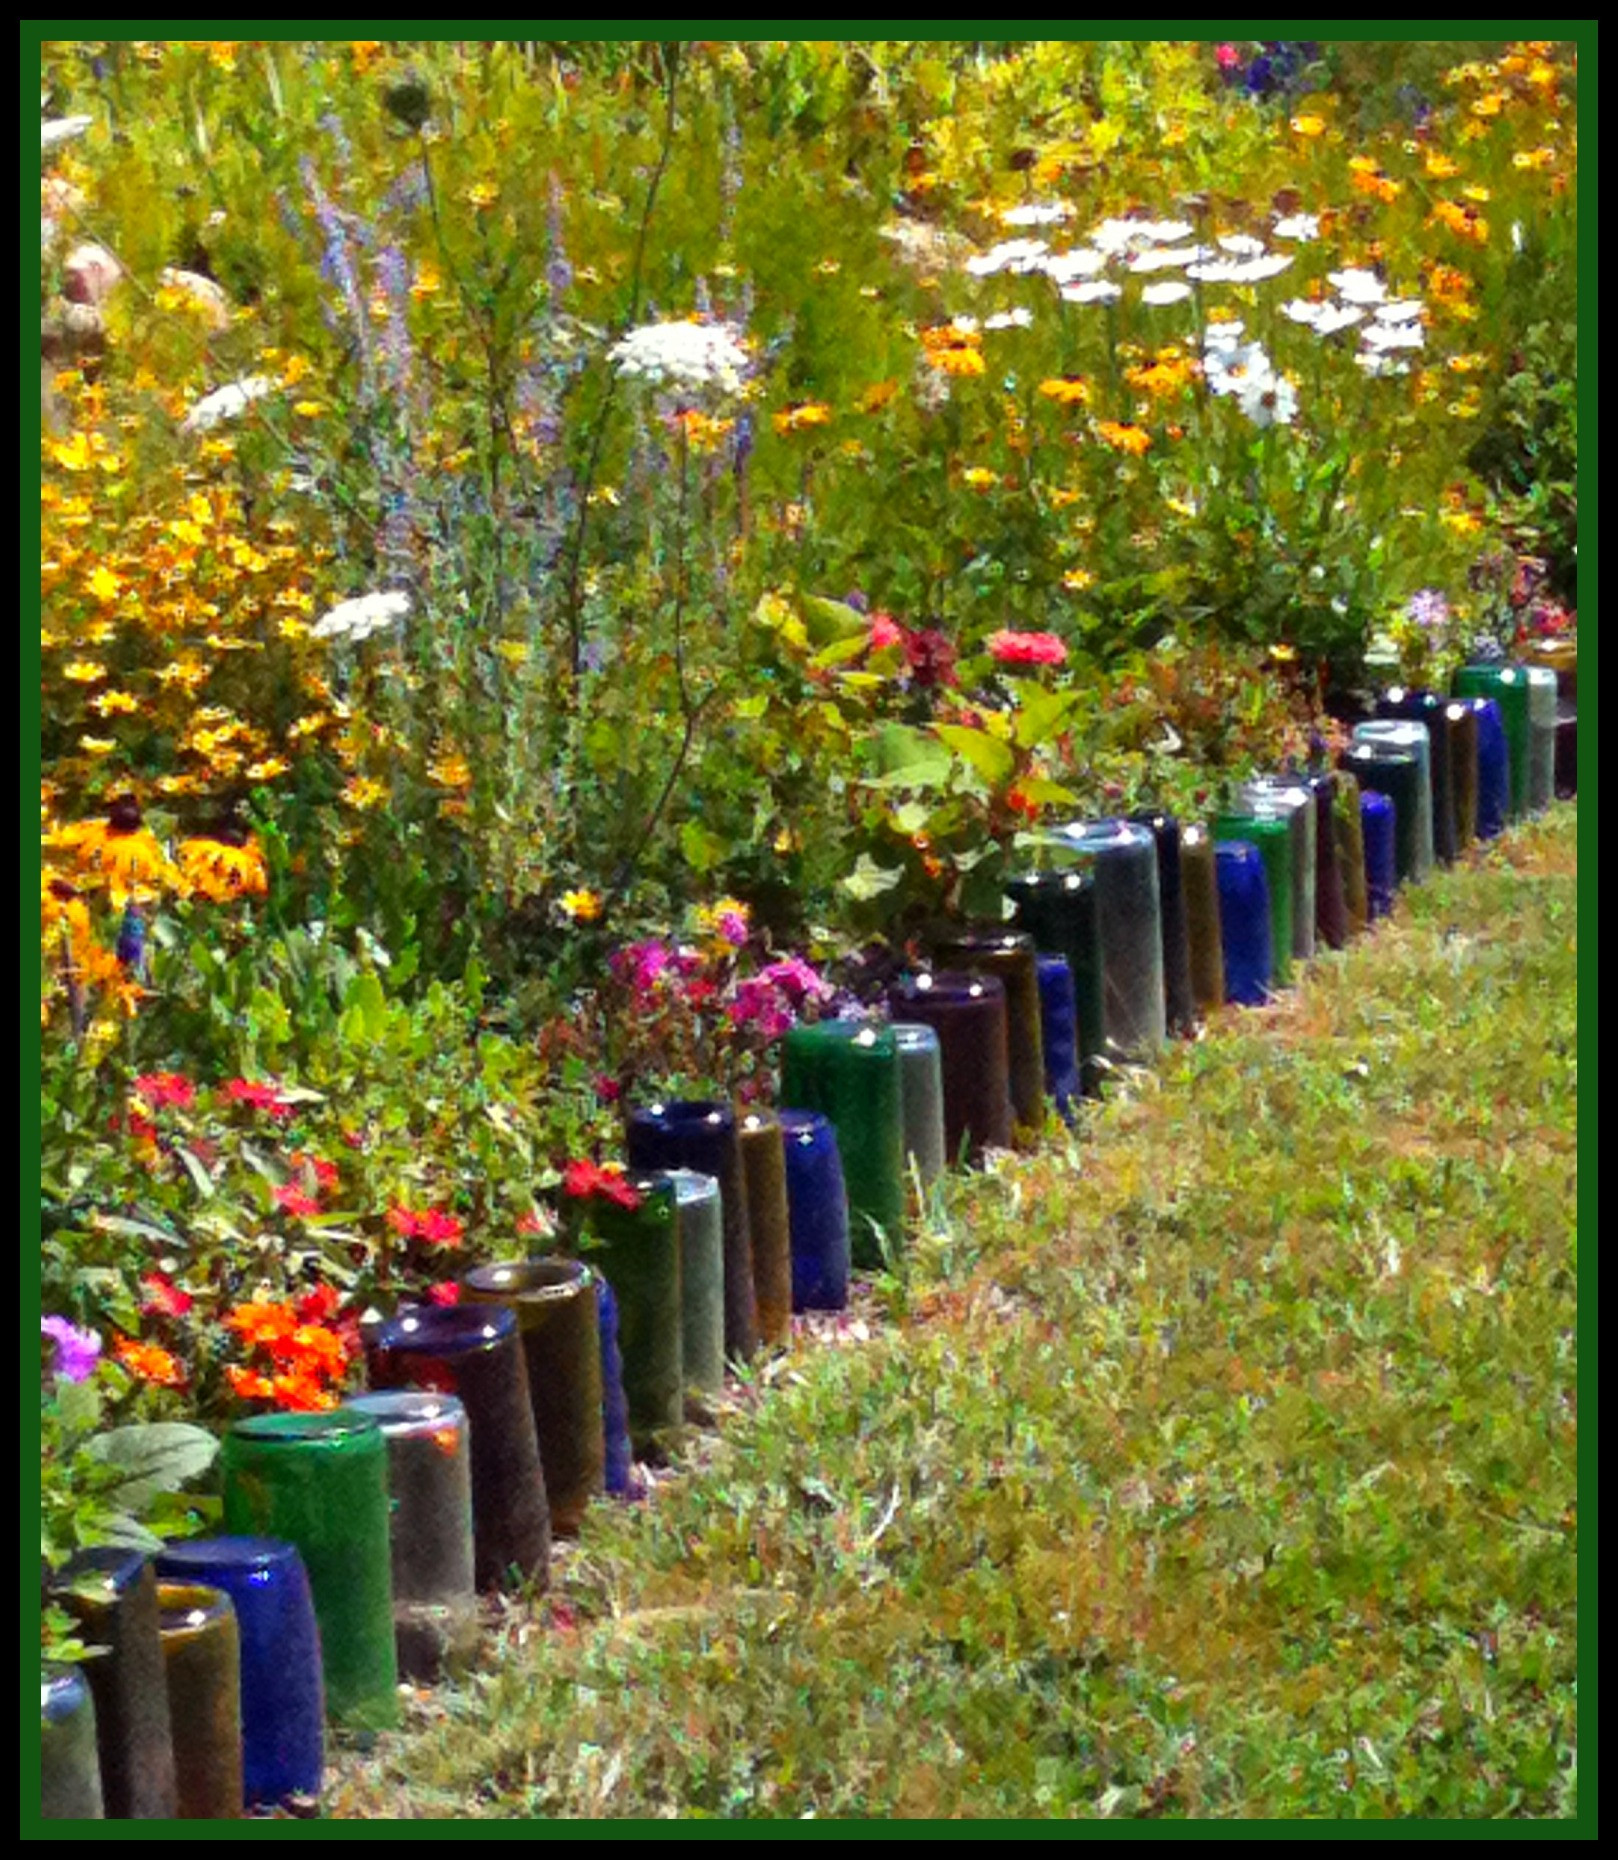 Best ideas about DIY Flower Bed Borders . Save or Pin 1000 images about Recycle Projects & Ideas for the Now.